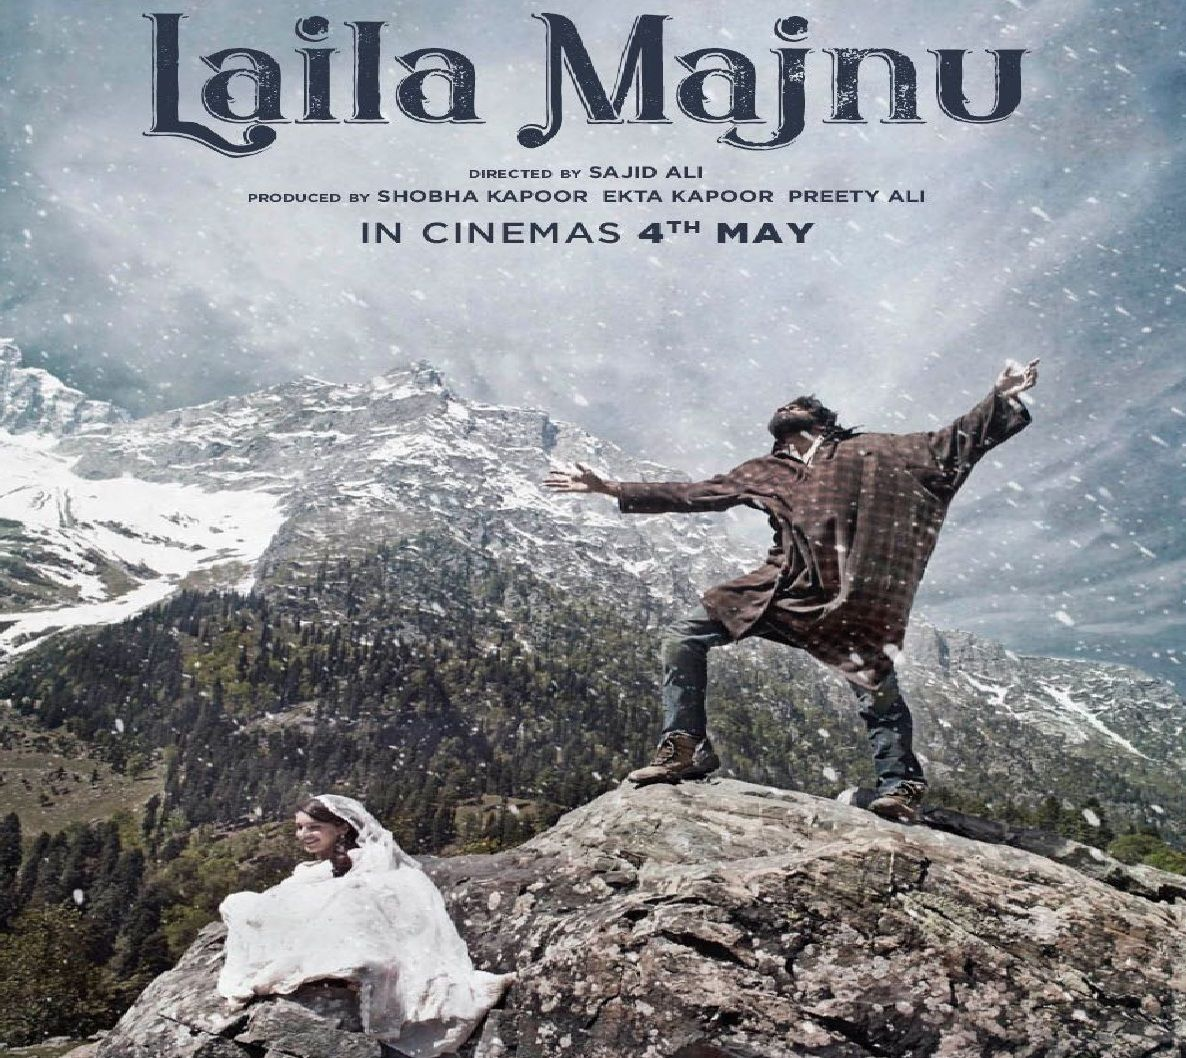 Https Viralaudiosongs Blogspot Com 2018 08 Laila Majnu 2018 Movie Songs Laila Html In 2020 Full Movies Download Full Movies Watch Bollywood Movies Online